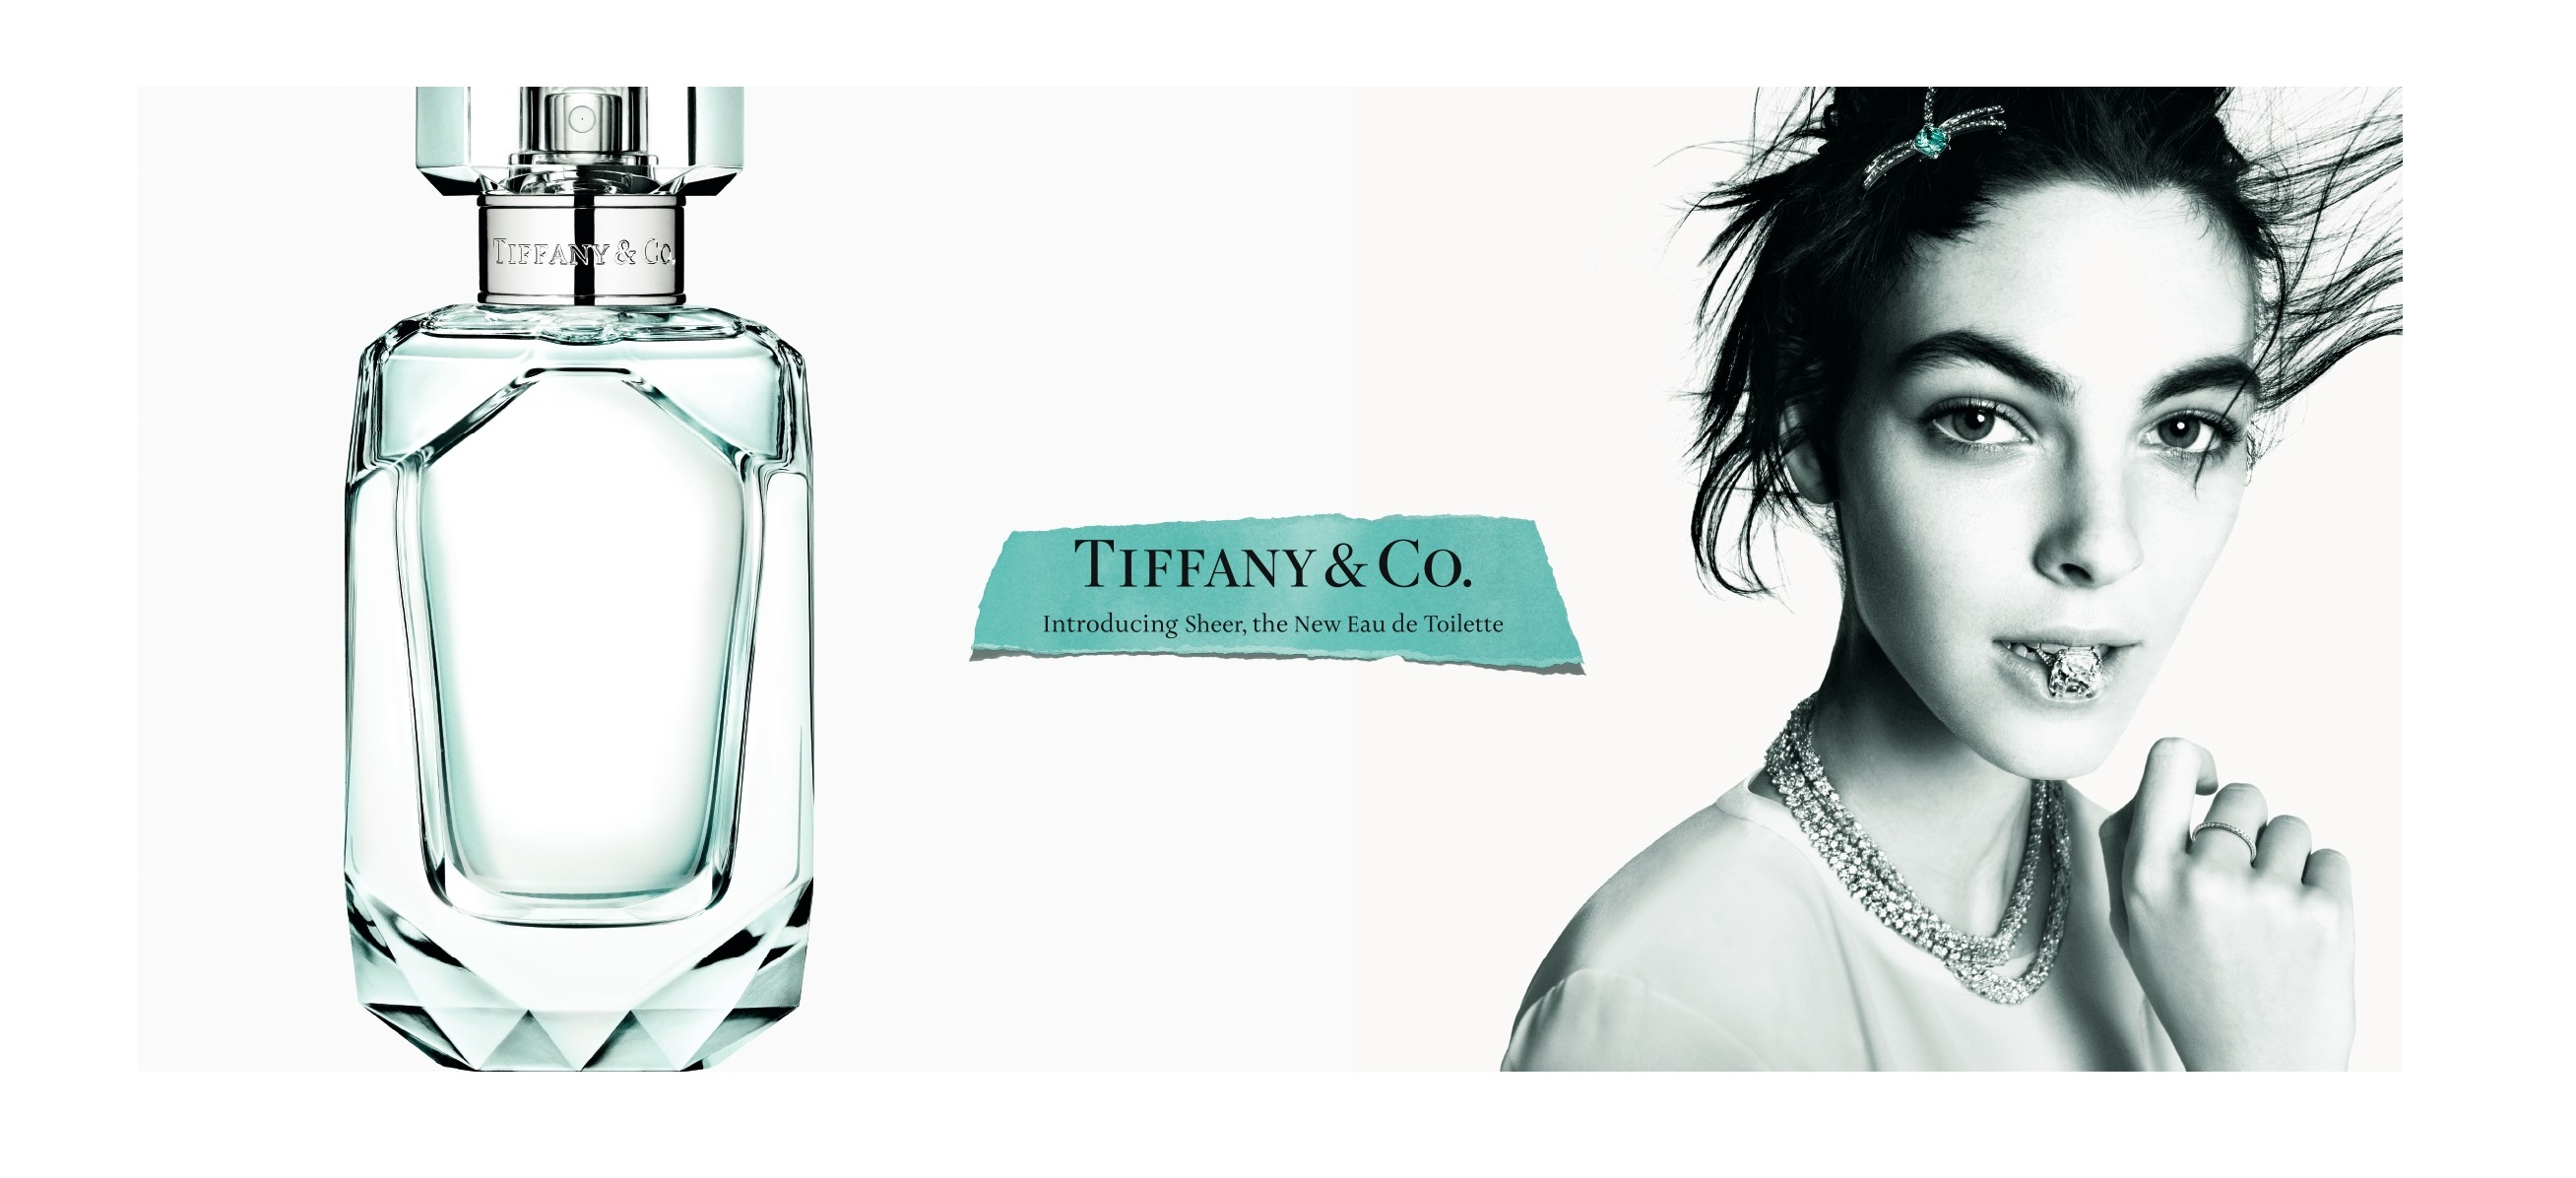 Tiffany & Co, Tiffany, parfume